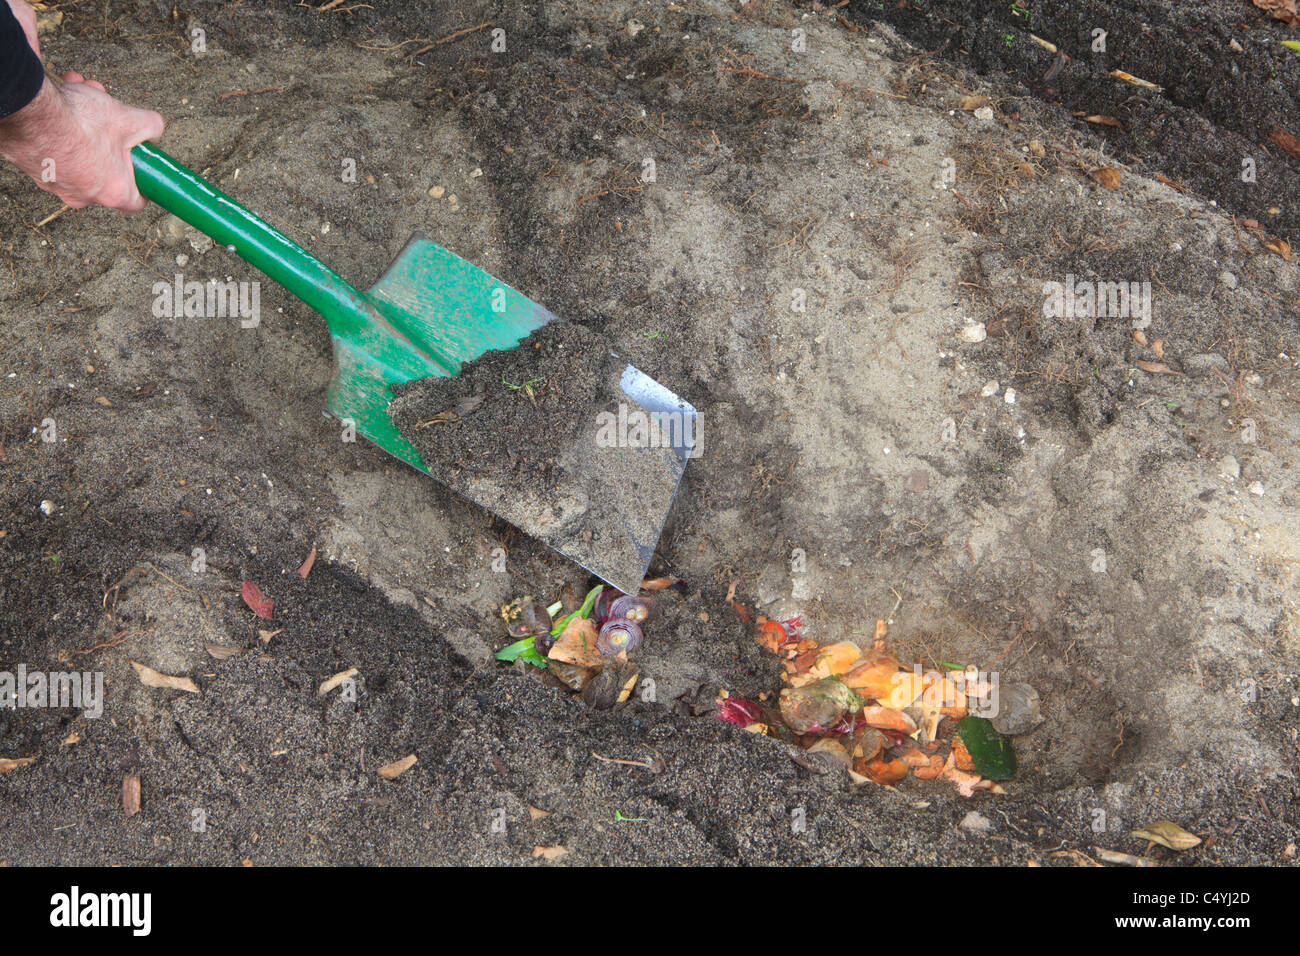 Covering kitchen scraps with soil. Part 5 of Trench Composting to improve soil quality series of images. - Stock Image